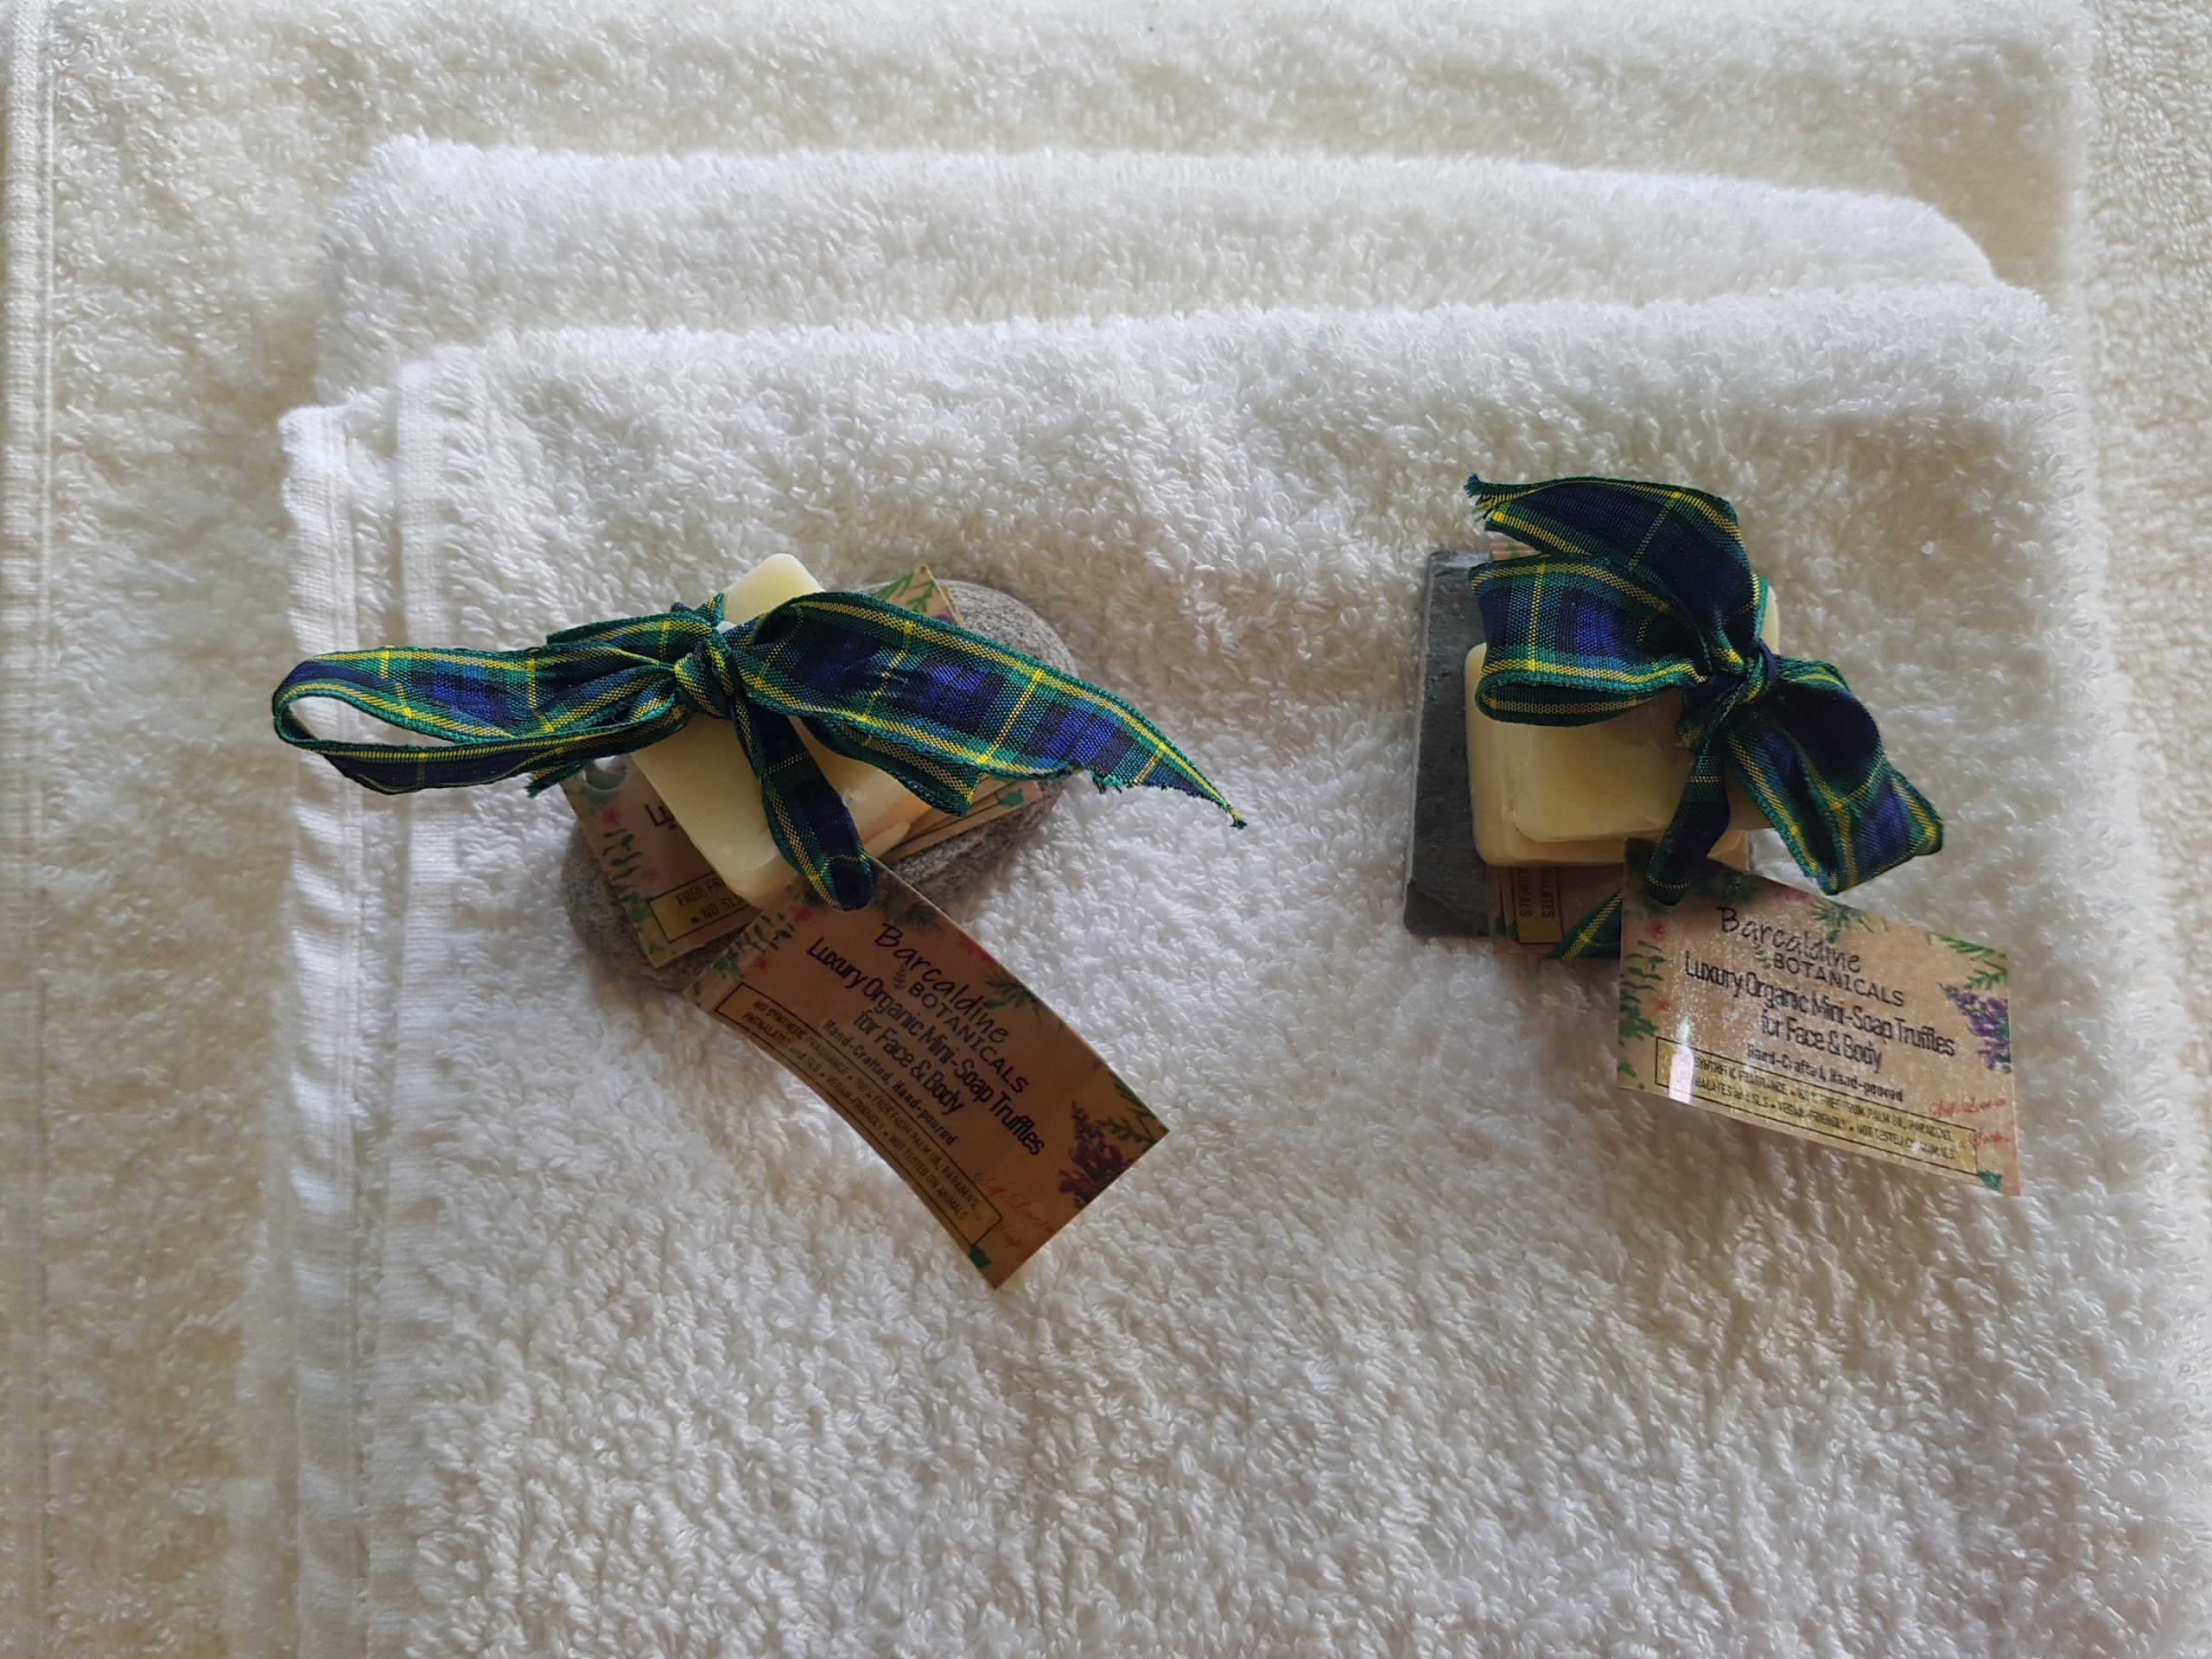 Hand made local complementary soap for each guest